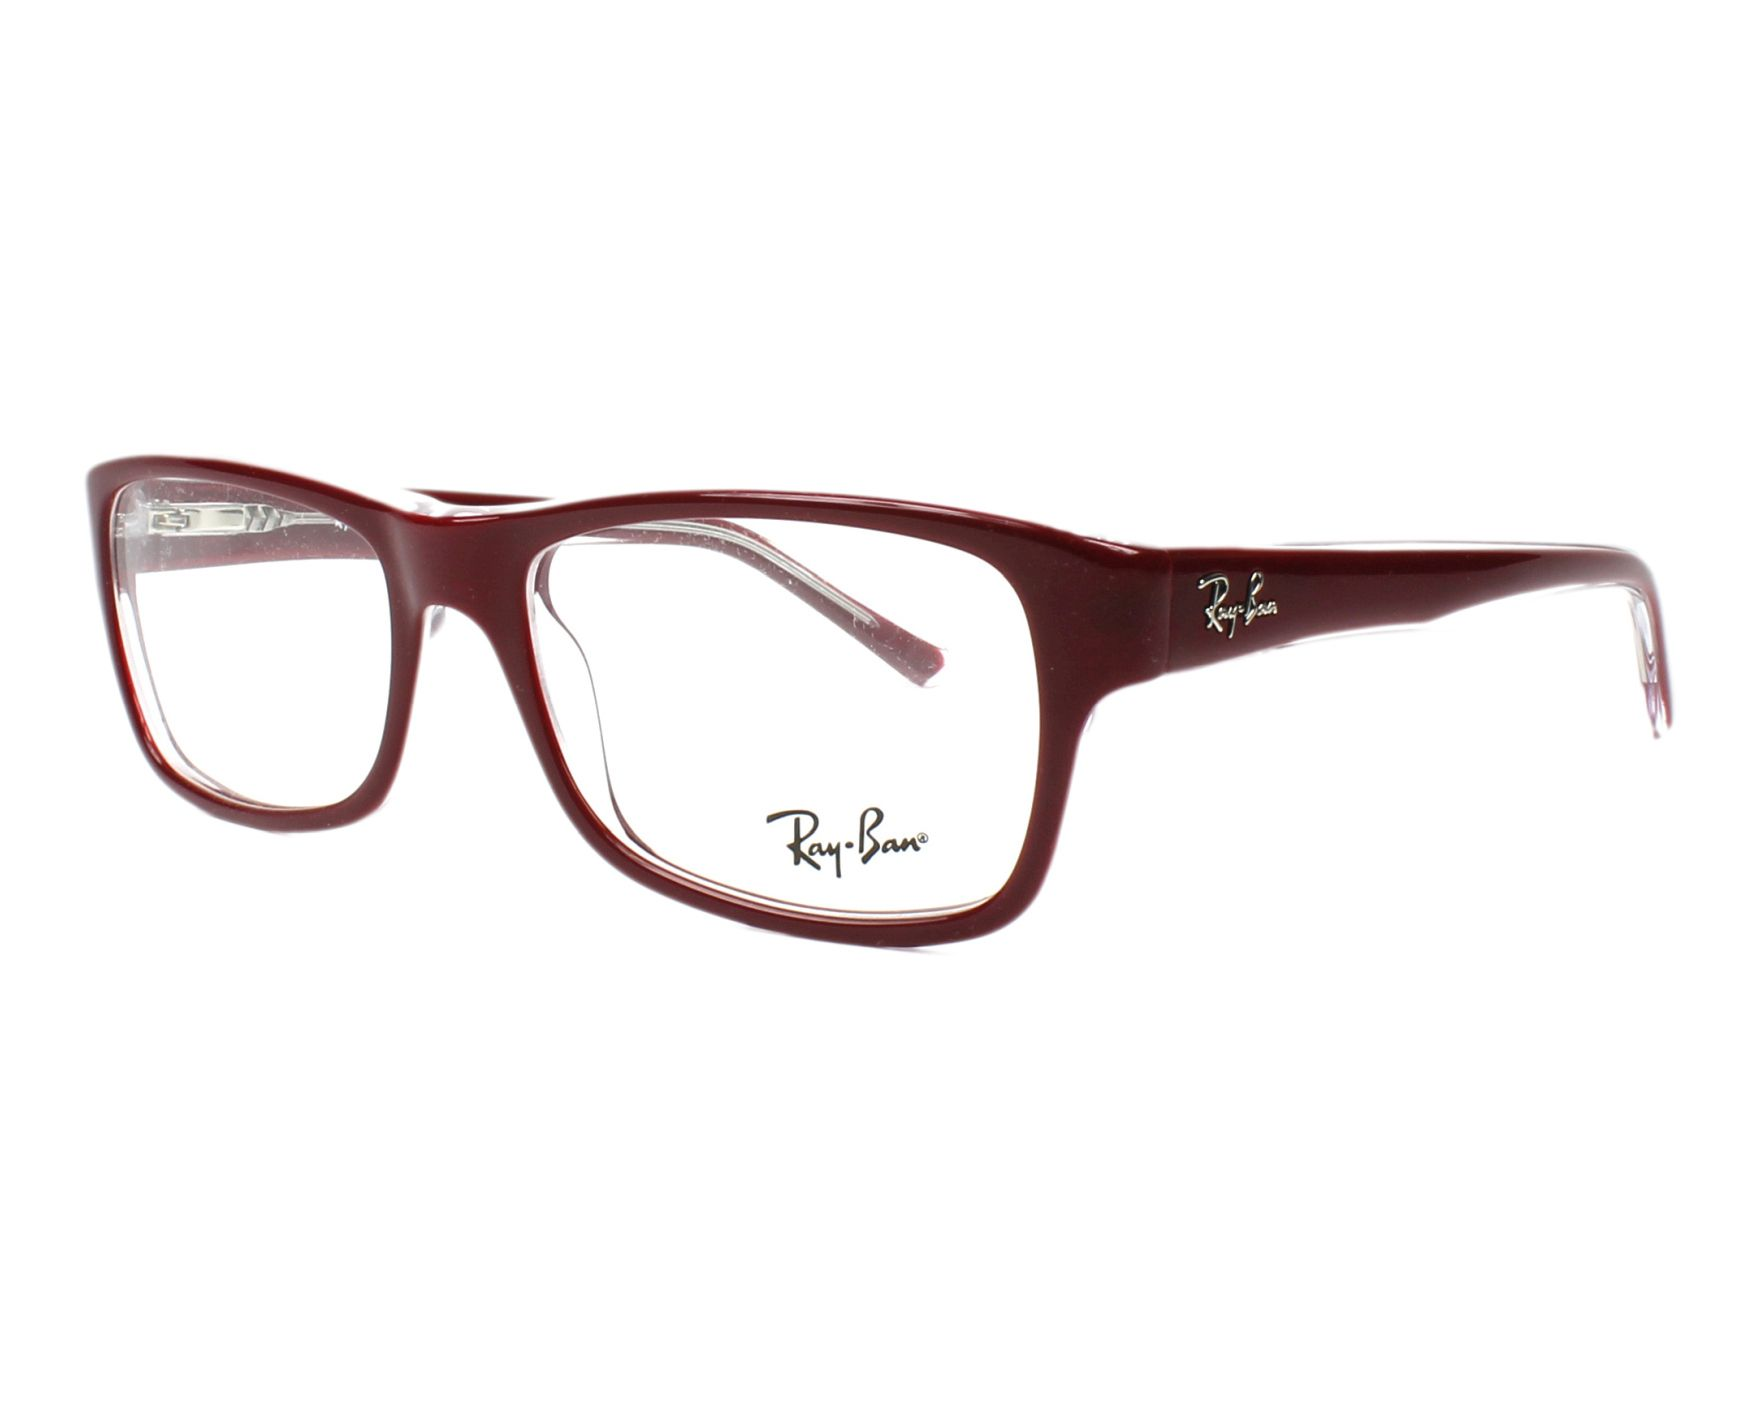 1628a6fc4ef ... cheapest eyeglasses ray ban rx 5268 5738 52 17 bordeaux profile view  9e98f 627f2